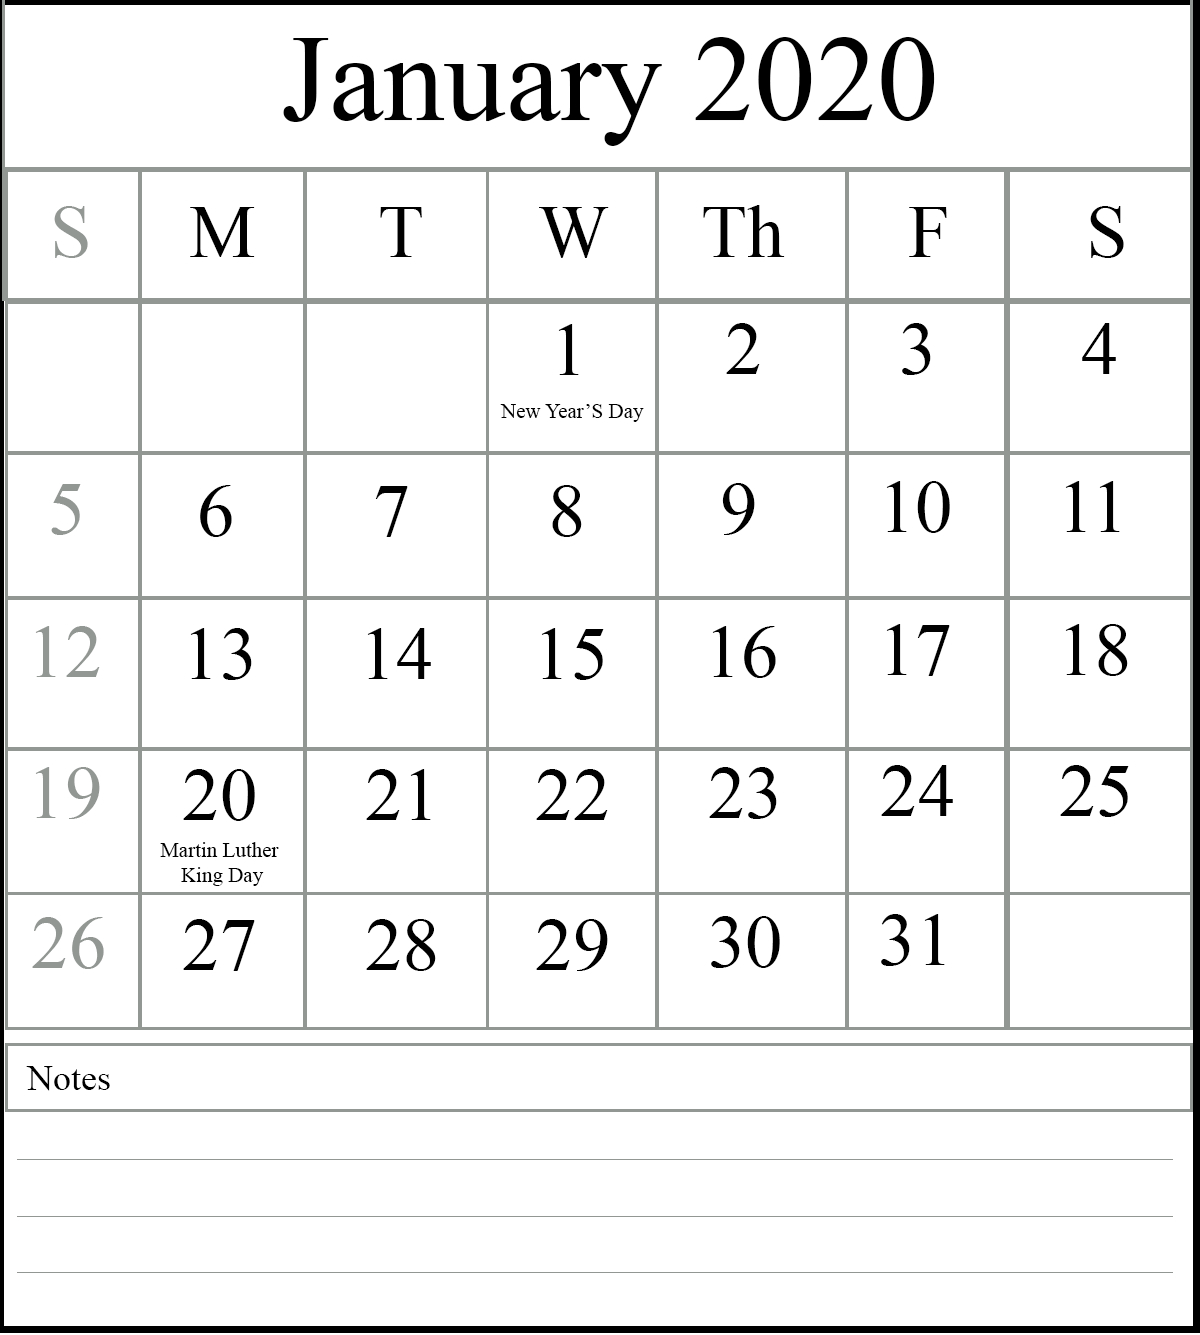 Free January 2020 Printable Calendar In Pdf, Excel & Word throughout 2020 Calender With Space To Write